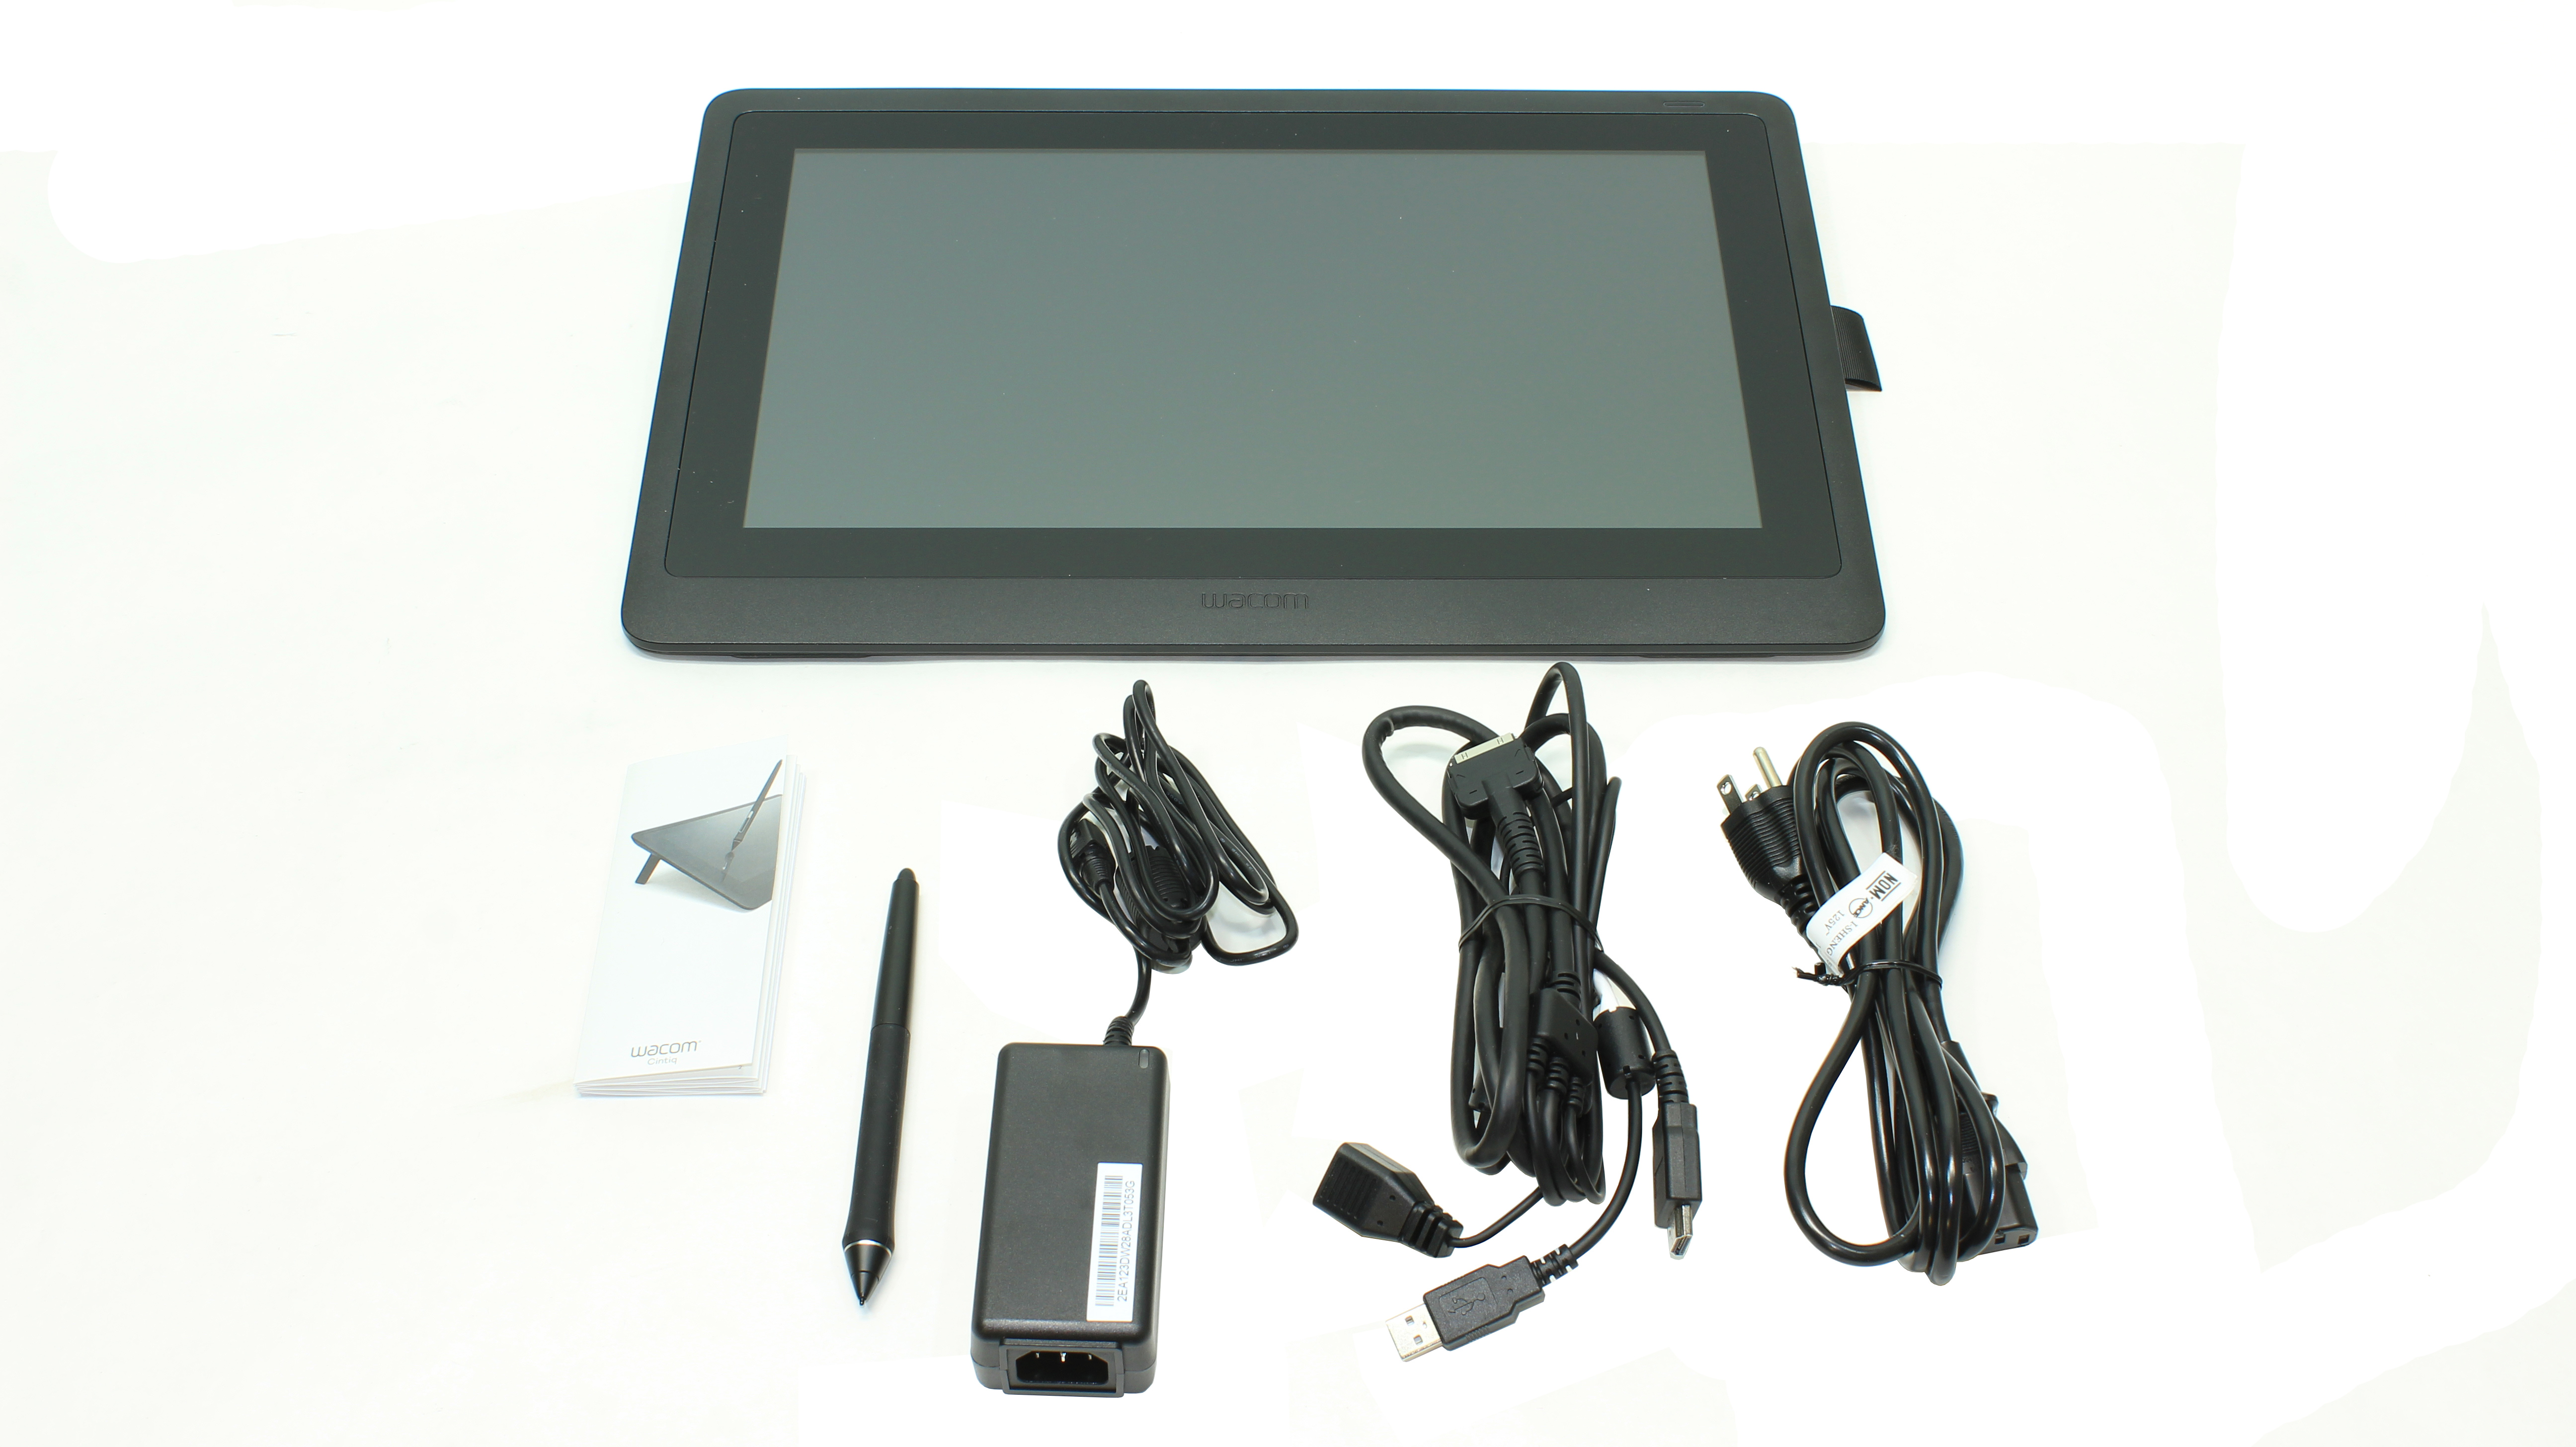 Wacom Cintiq 16 Digitizer with LCD display HDMI USB 2.0 DTK16600K0A